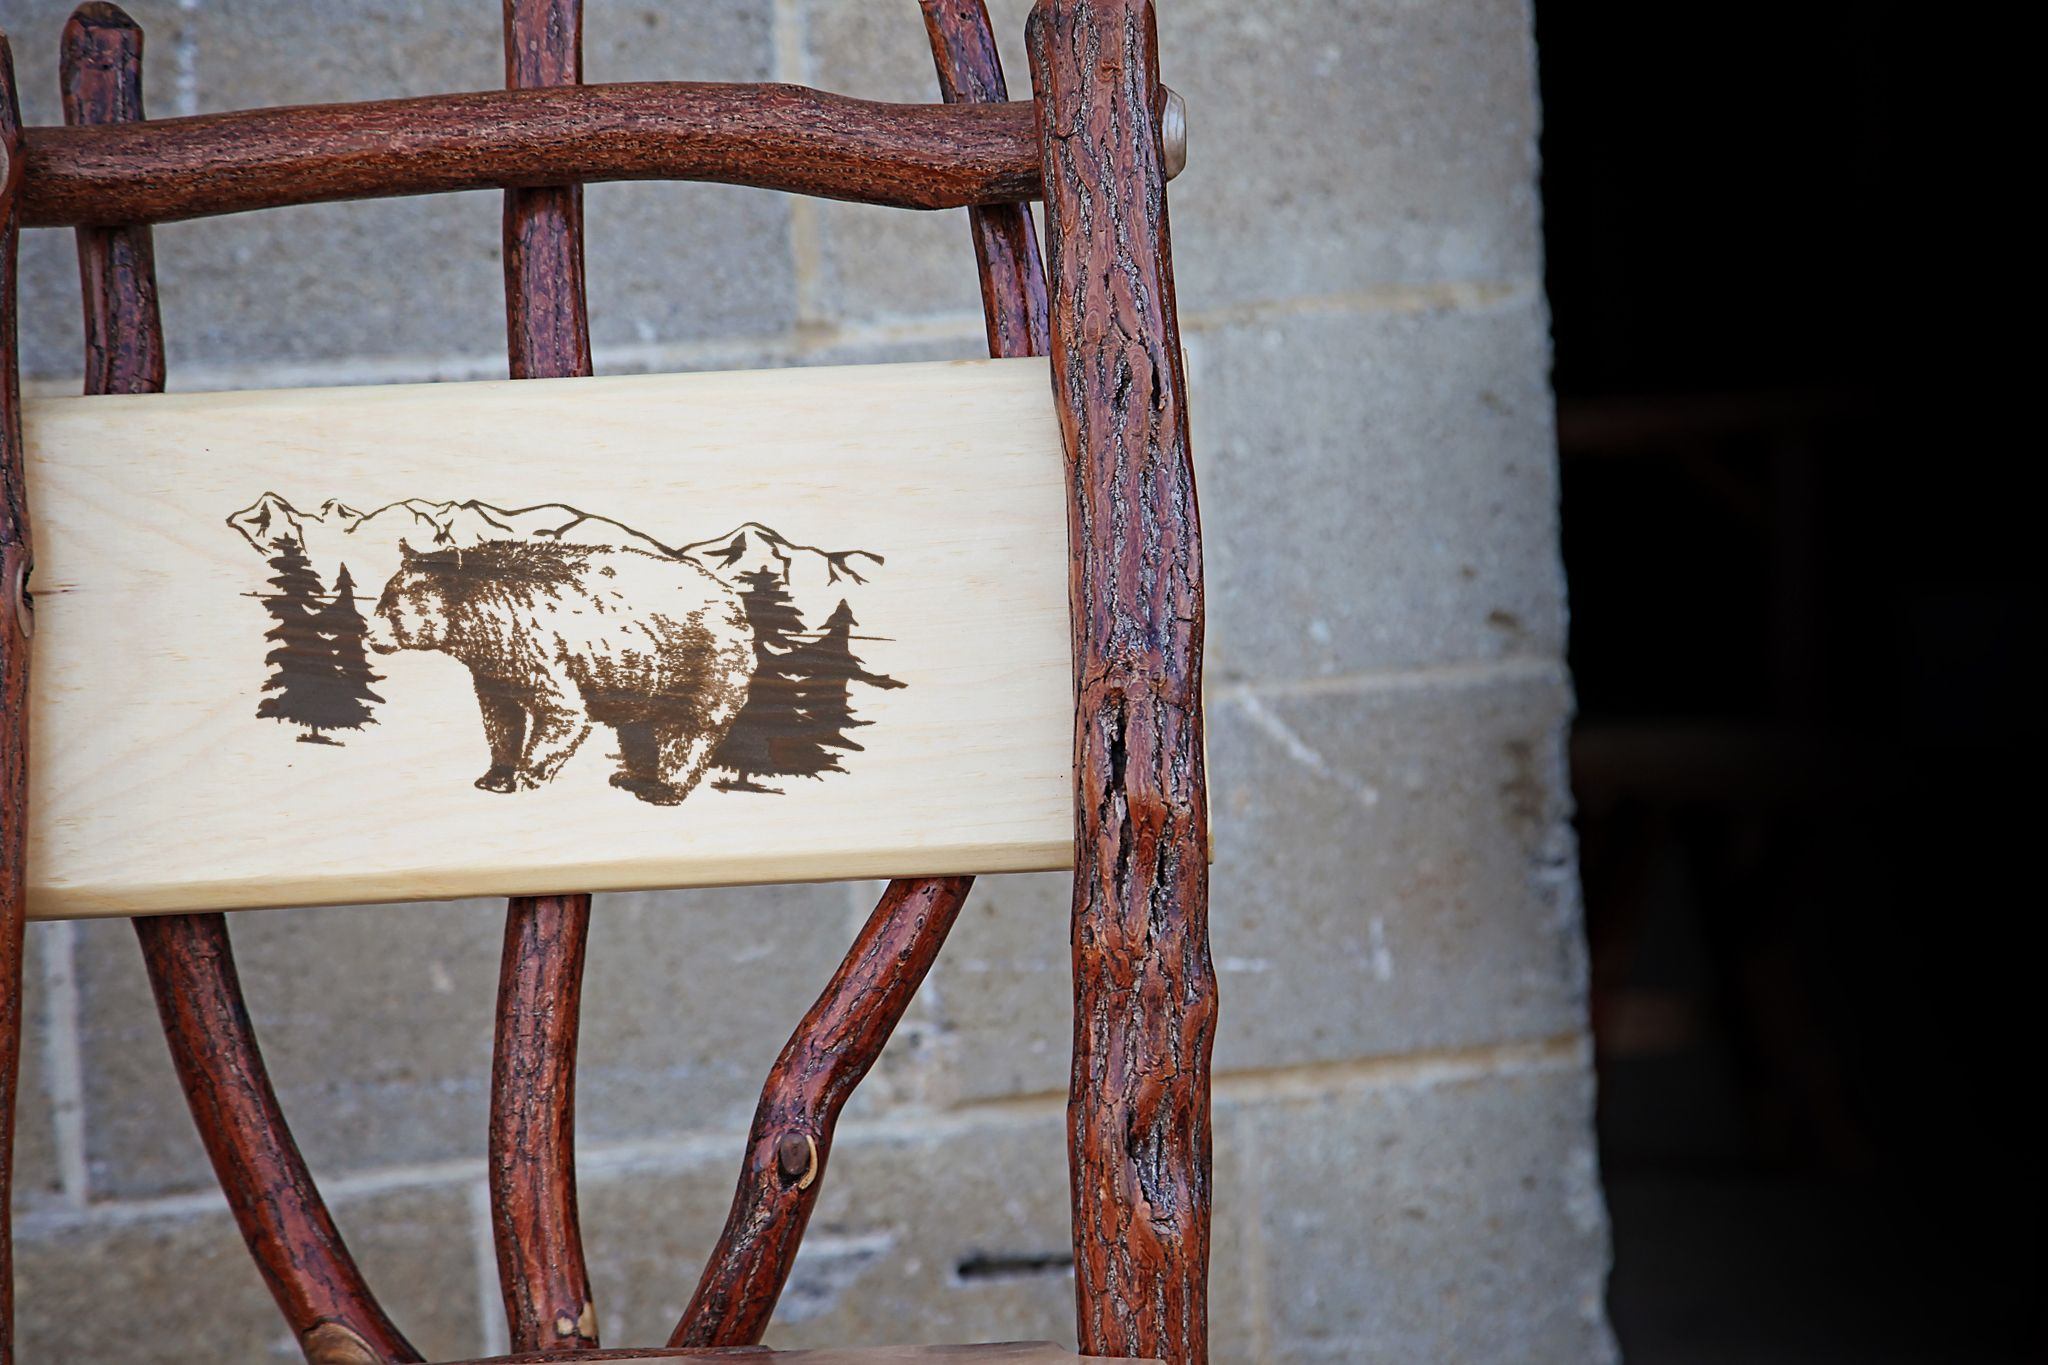 Log chair with bear engraving from Peaceful Valley Furniture